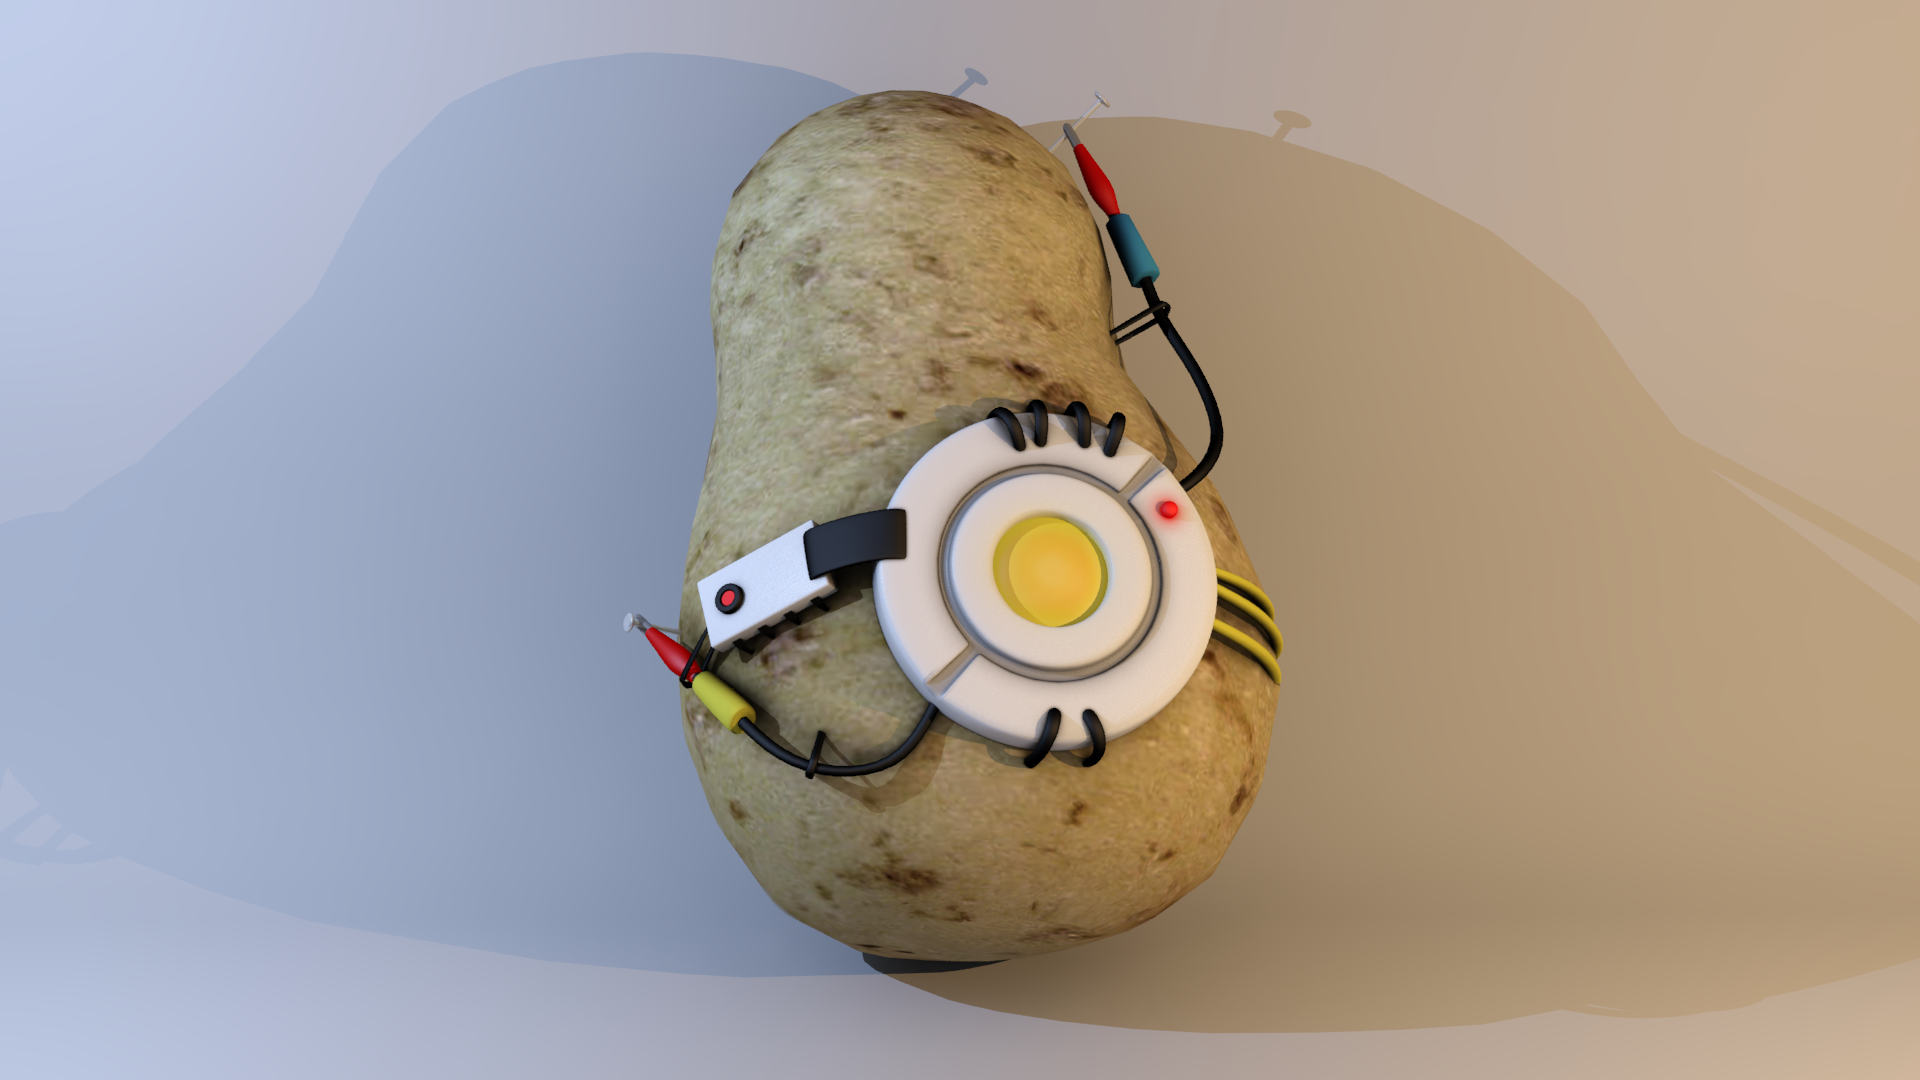 potatos_by_fuoco2012-d70ynus.png